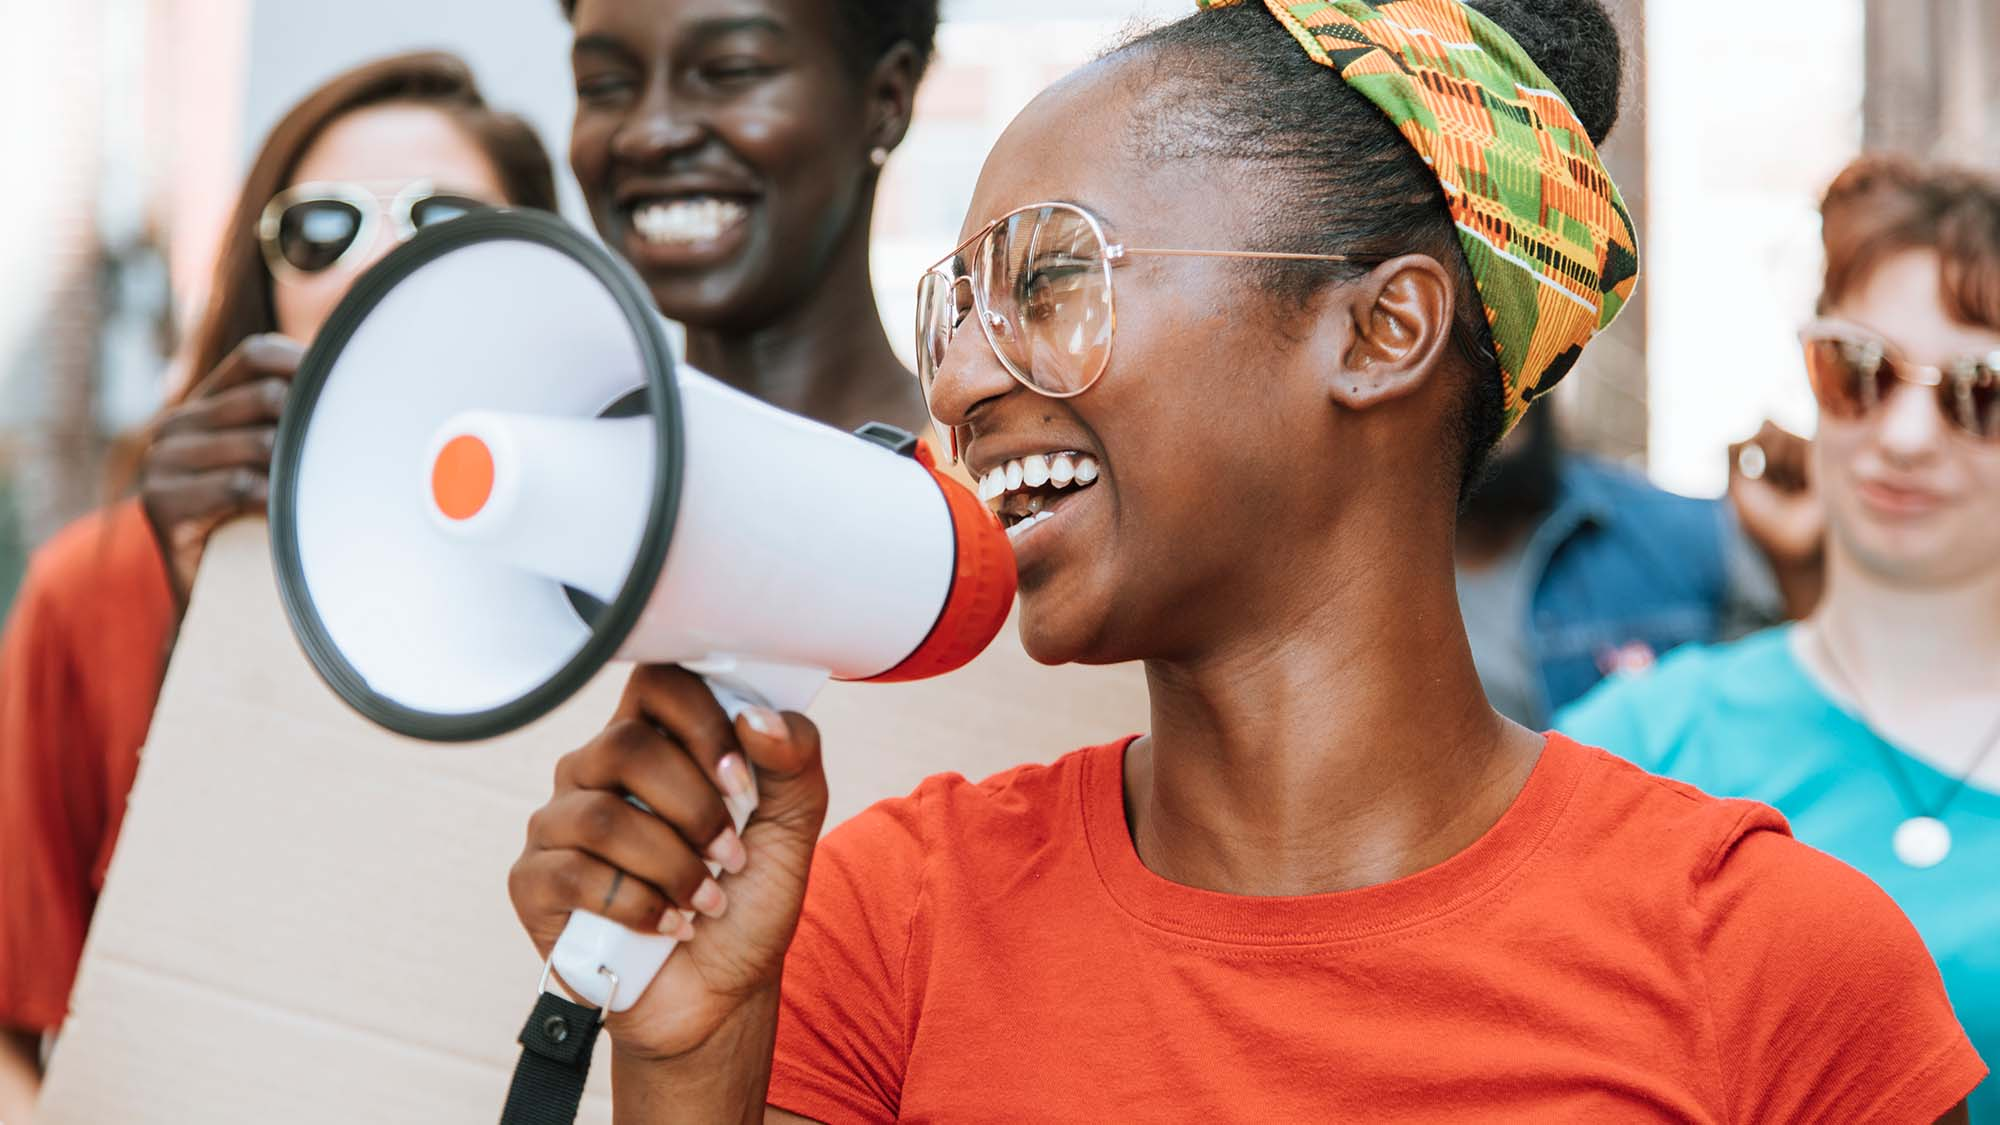 Young African American woman leads a group of people in making their voices heard. They are walking on the street and she has a mega-phone up to her mouth. She is smiling and positive in a colorful headband and red t-shirt.